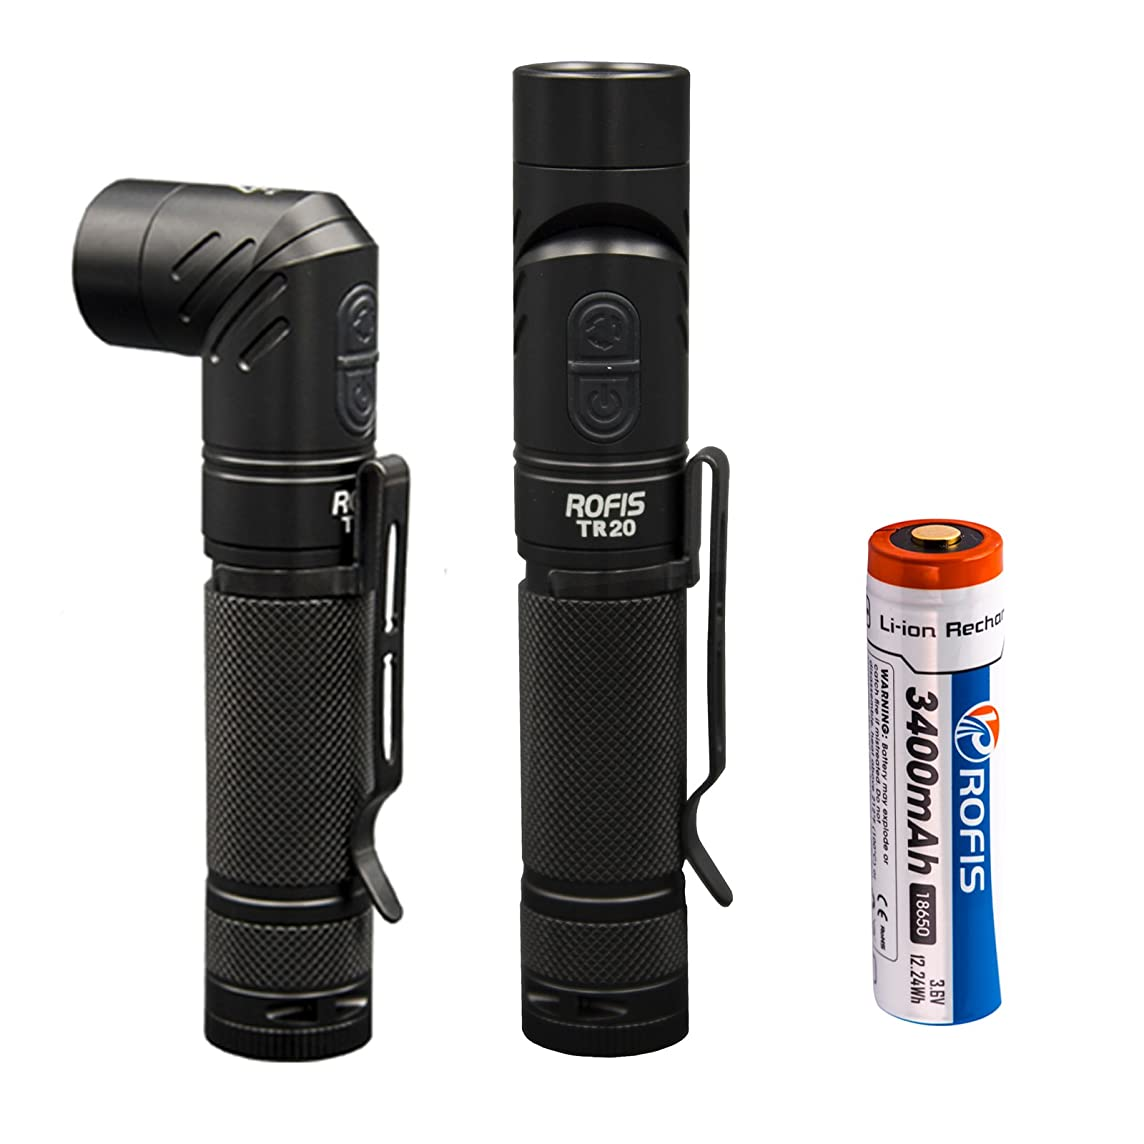 Rofis TR20 Anglelight CREE XP-L HI V3 LED 1100 Lumens USB Rechargeable Flashlight,Magnetic Adjustable-head Portable Compact Tactical LED Flashlight With 3400mAh Rechargeable Battery